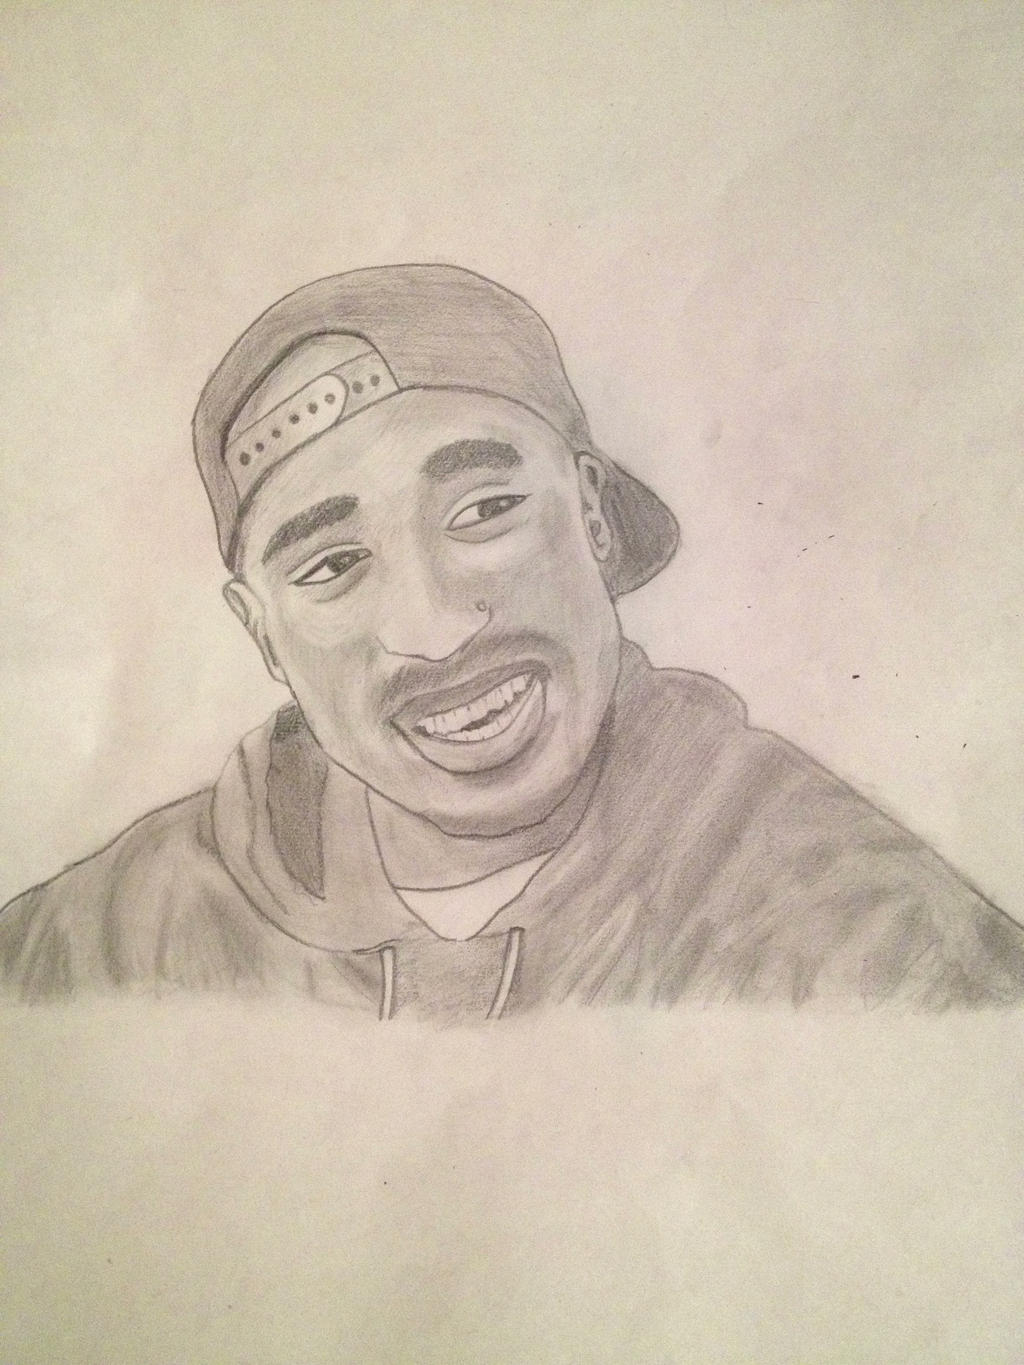 2pac drawing by SeanJJ on DeviantArt